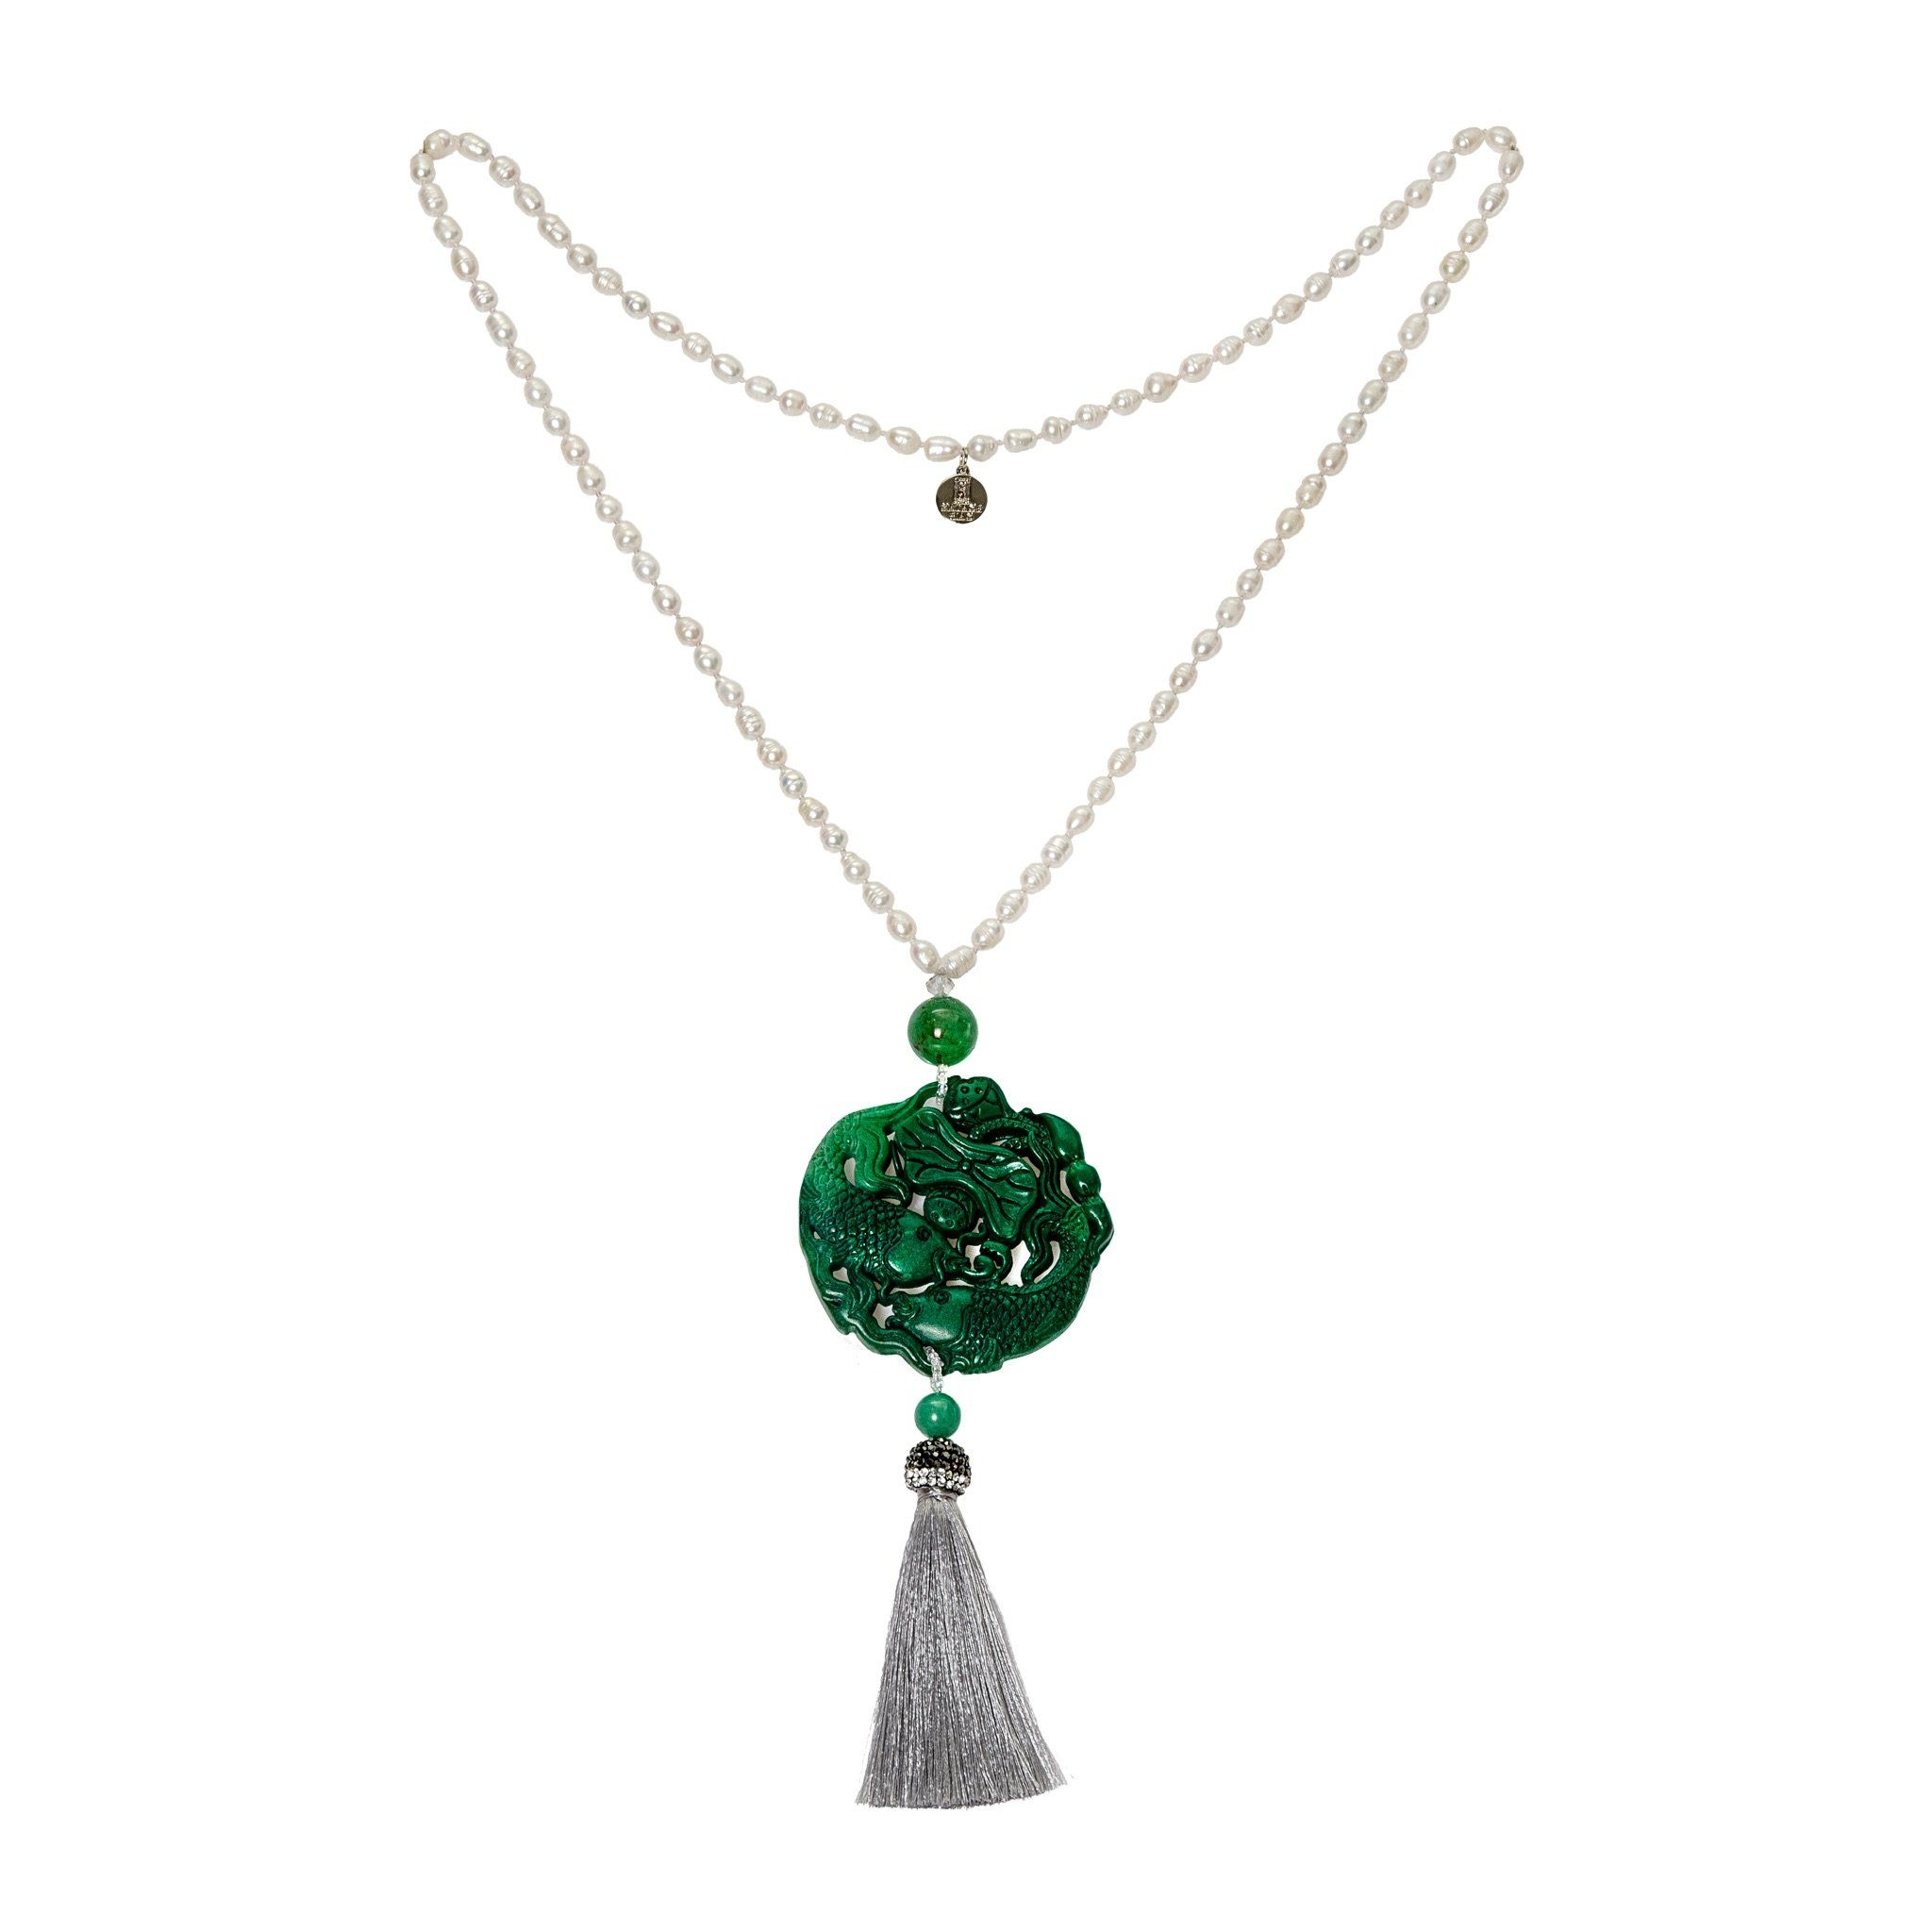 PEKIN pearls and green necklace - MadamSiam